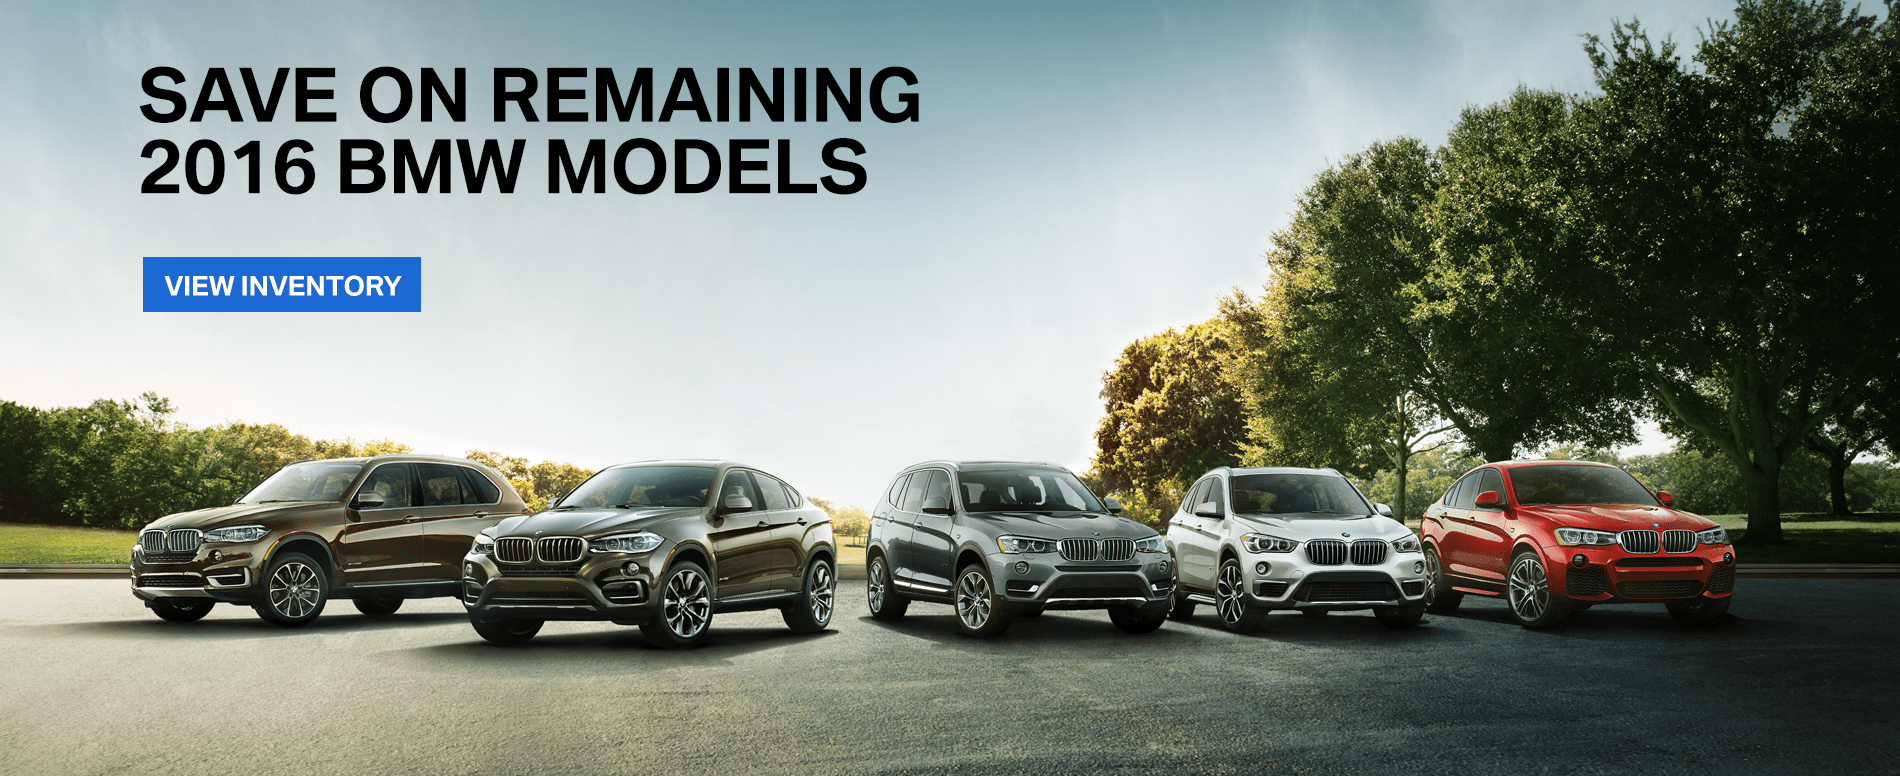 Save on remaining 2016 BMW models